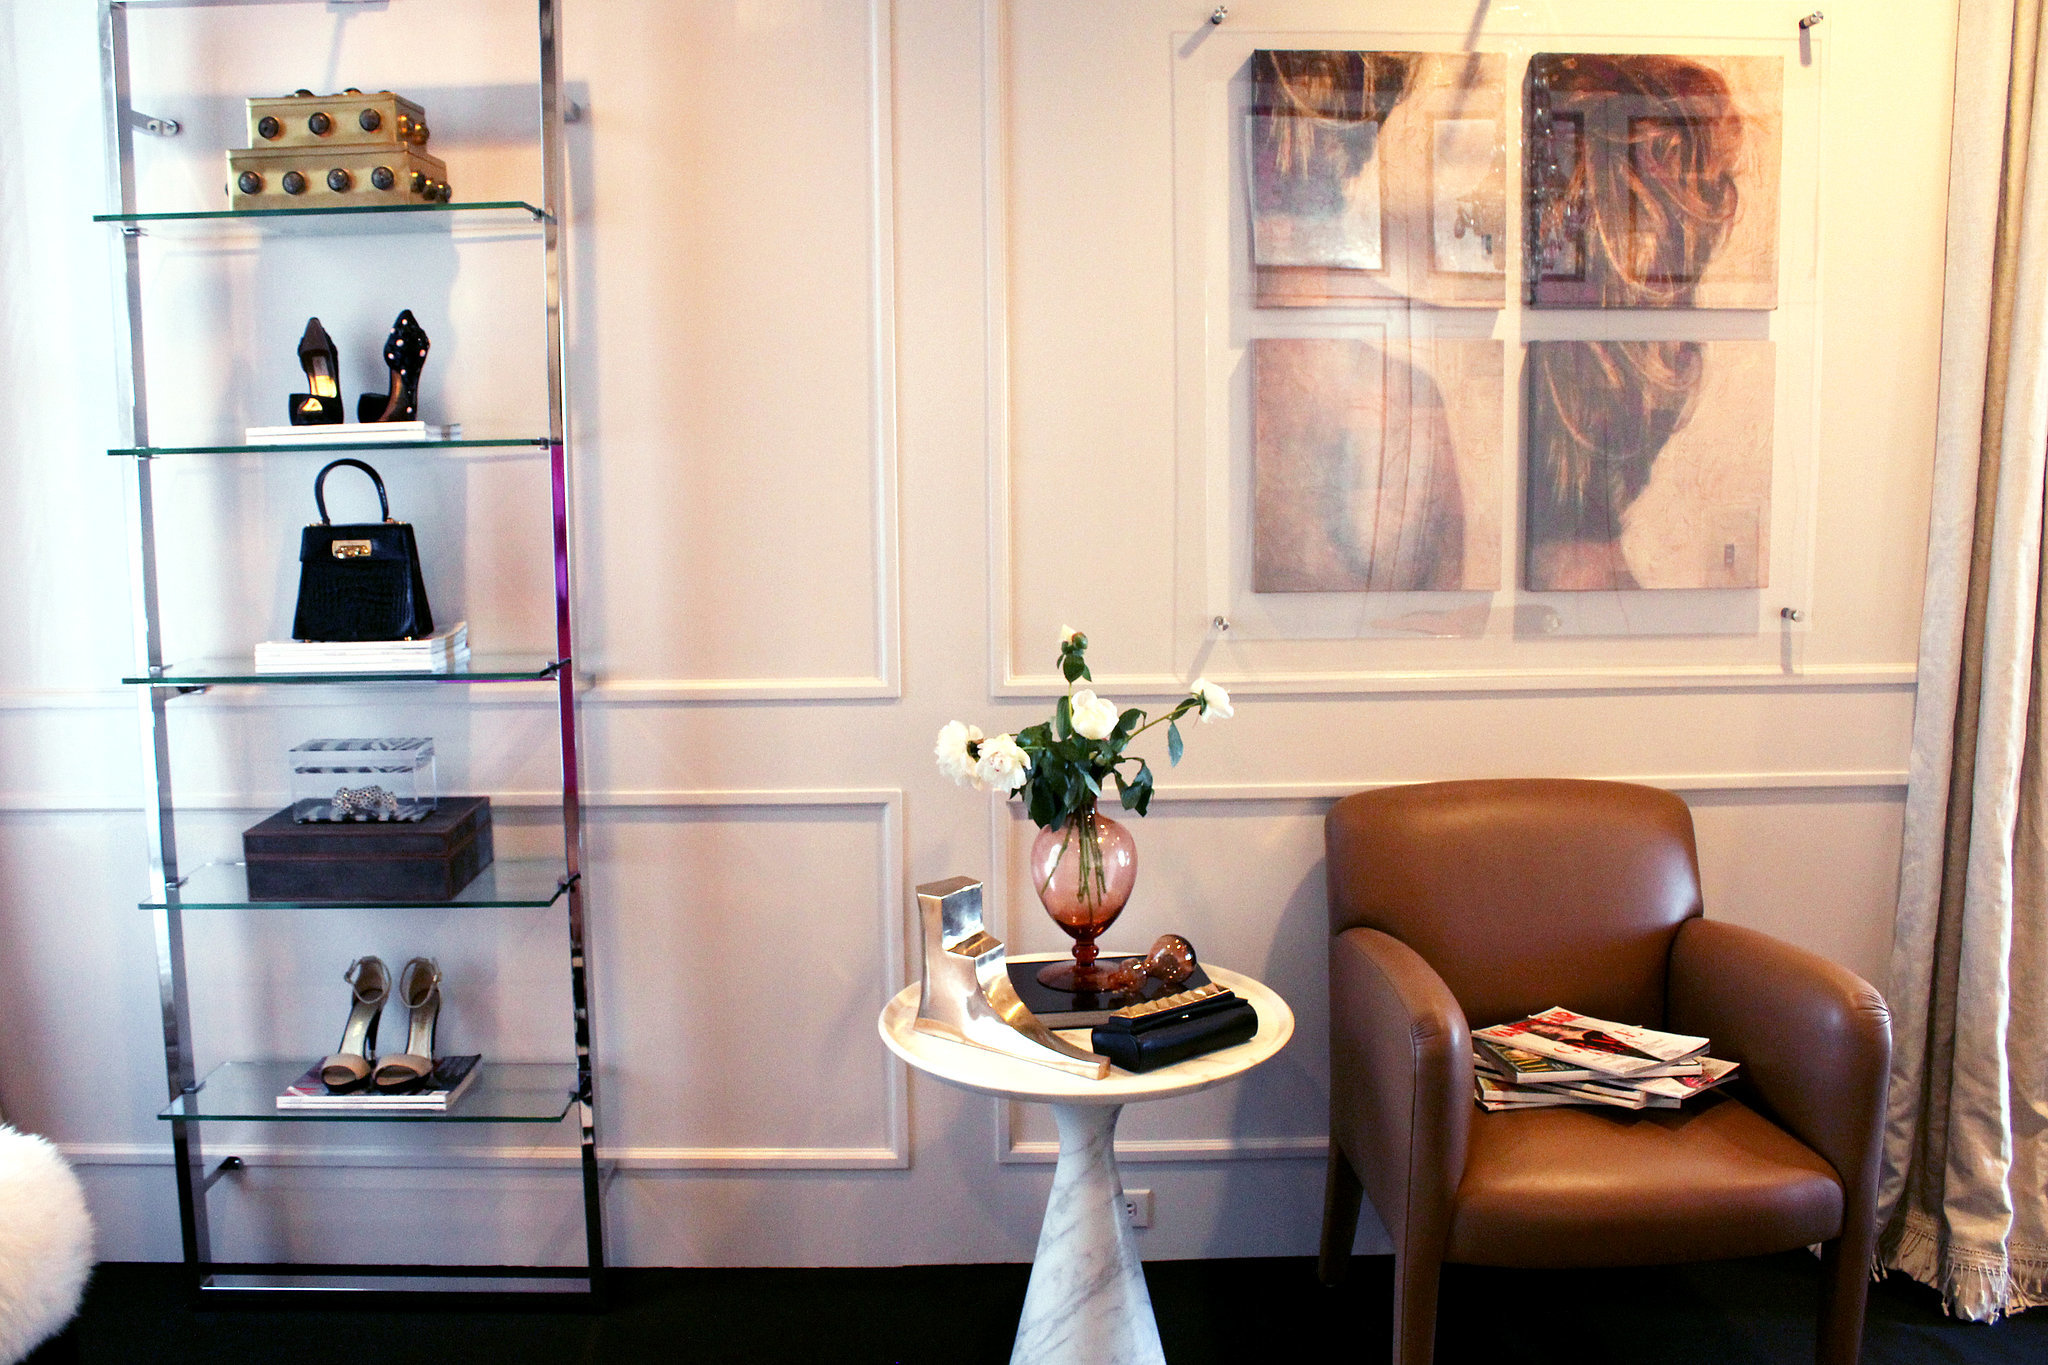 We love her idea of using shelving to show off accessories like shoes and handbags.